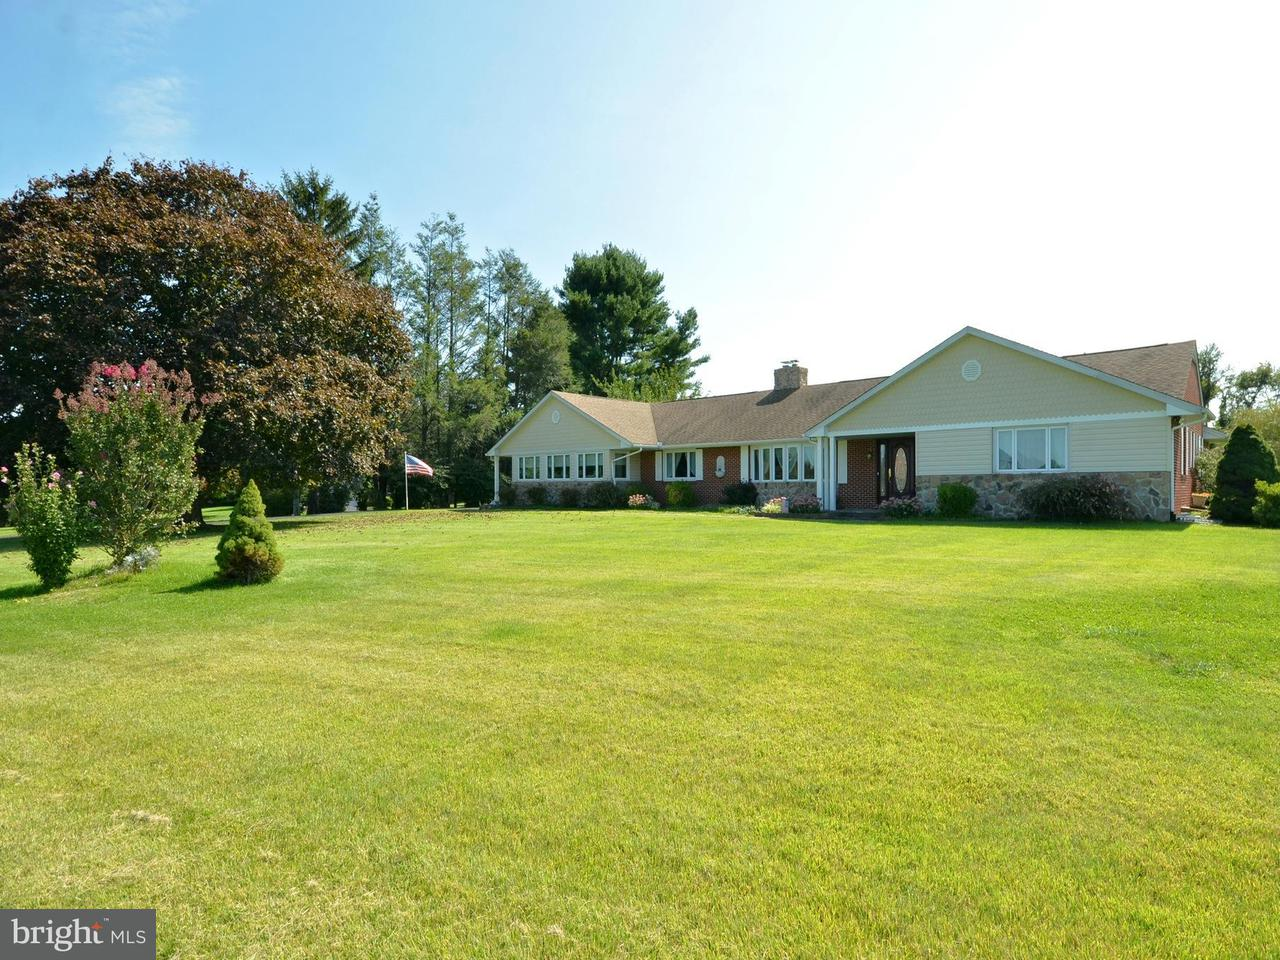 Single Family Home for Sale at 2409 HADDON HURST Court 2409 HADDON HURST Court Fallston, Maryland 21047 United States